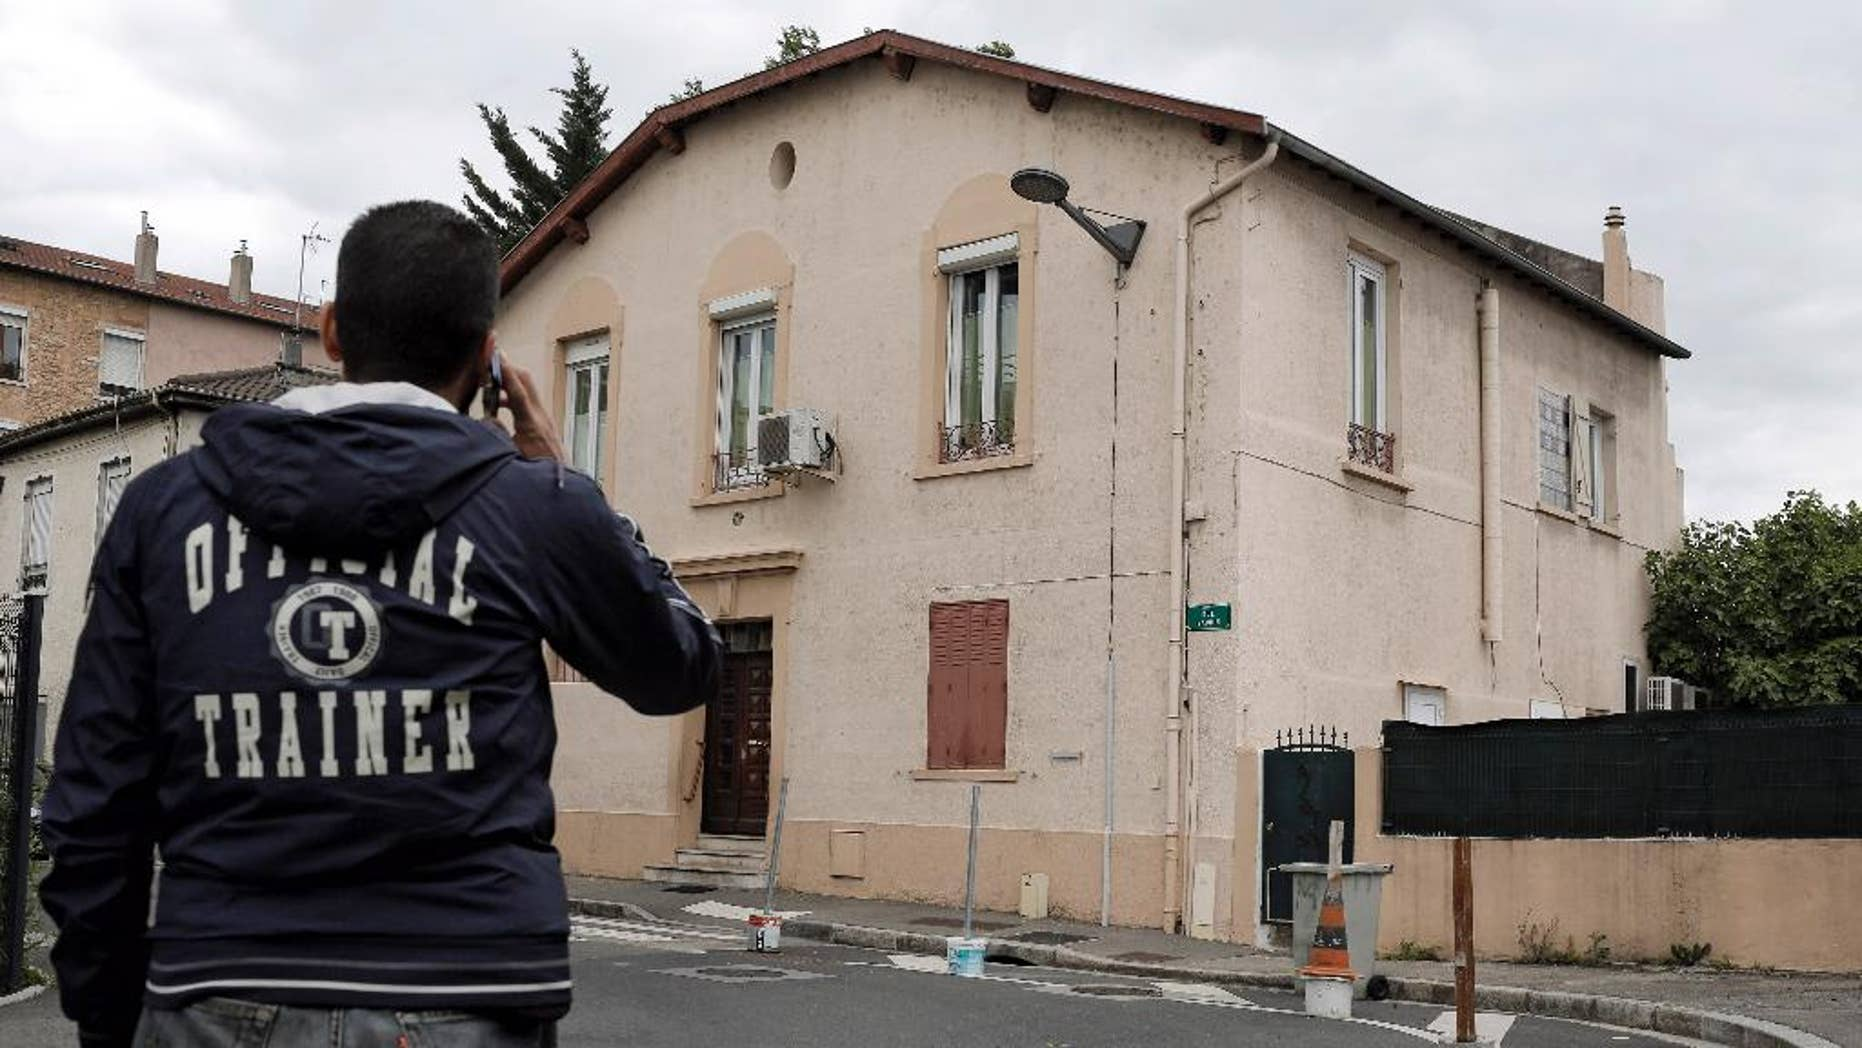 In this photo dated Tuesday, May 26, 2015 a man makes a phone call as he walk past a mosque in Oullins outside Lyon, central France. The small Oullins mosque on the edge of Lyon won an unusual court battle on Wednesday against an ultraconservative Salafist member of the congregation regarded as disruptive and, in an apparent first for Muslims, used France's 1905 law guaranteeing secularism to argue its case.(AP Photo/Laurent Cipriani)